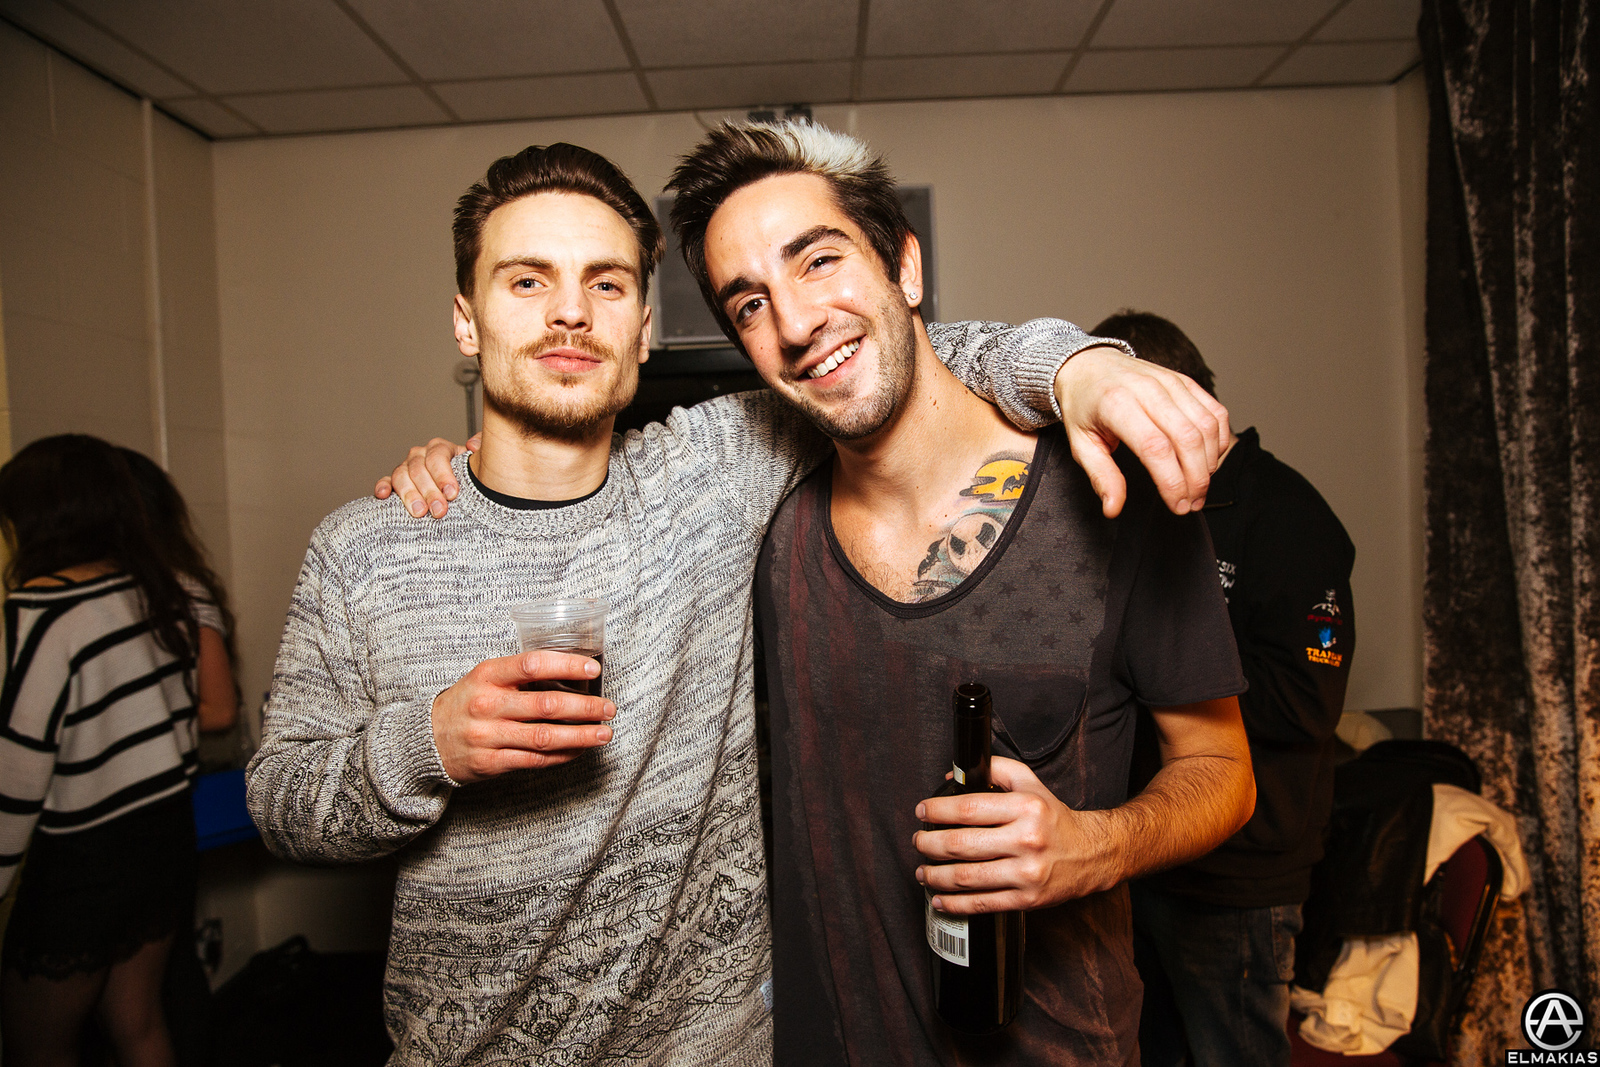 Dan of You Me At Six and Jack of All Time Low